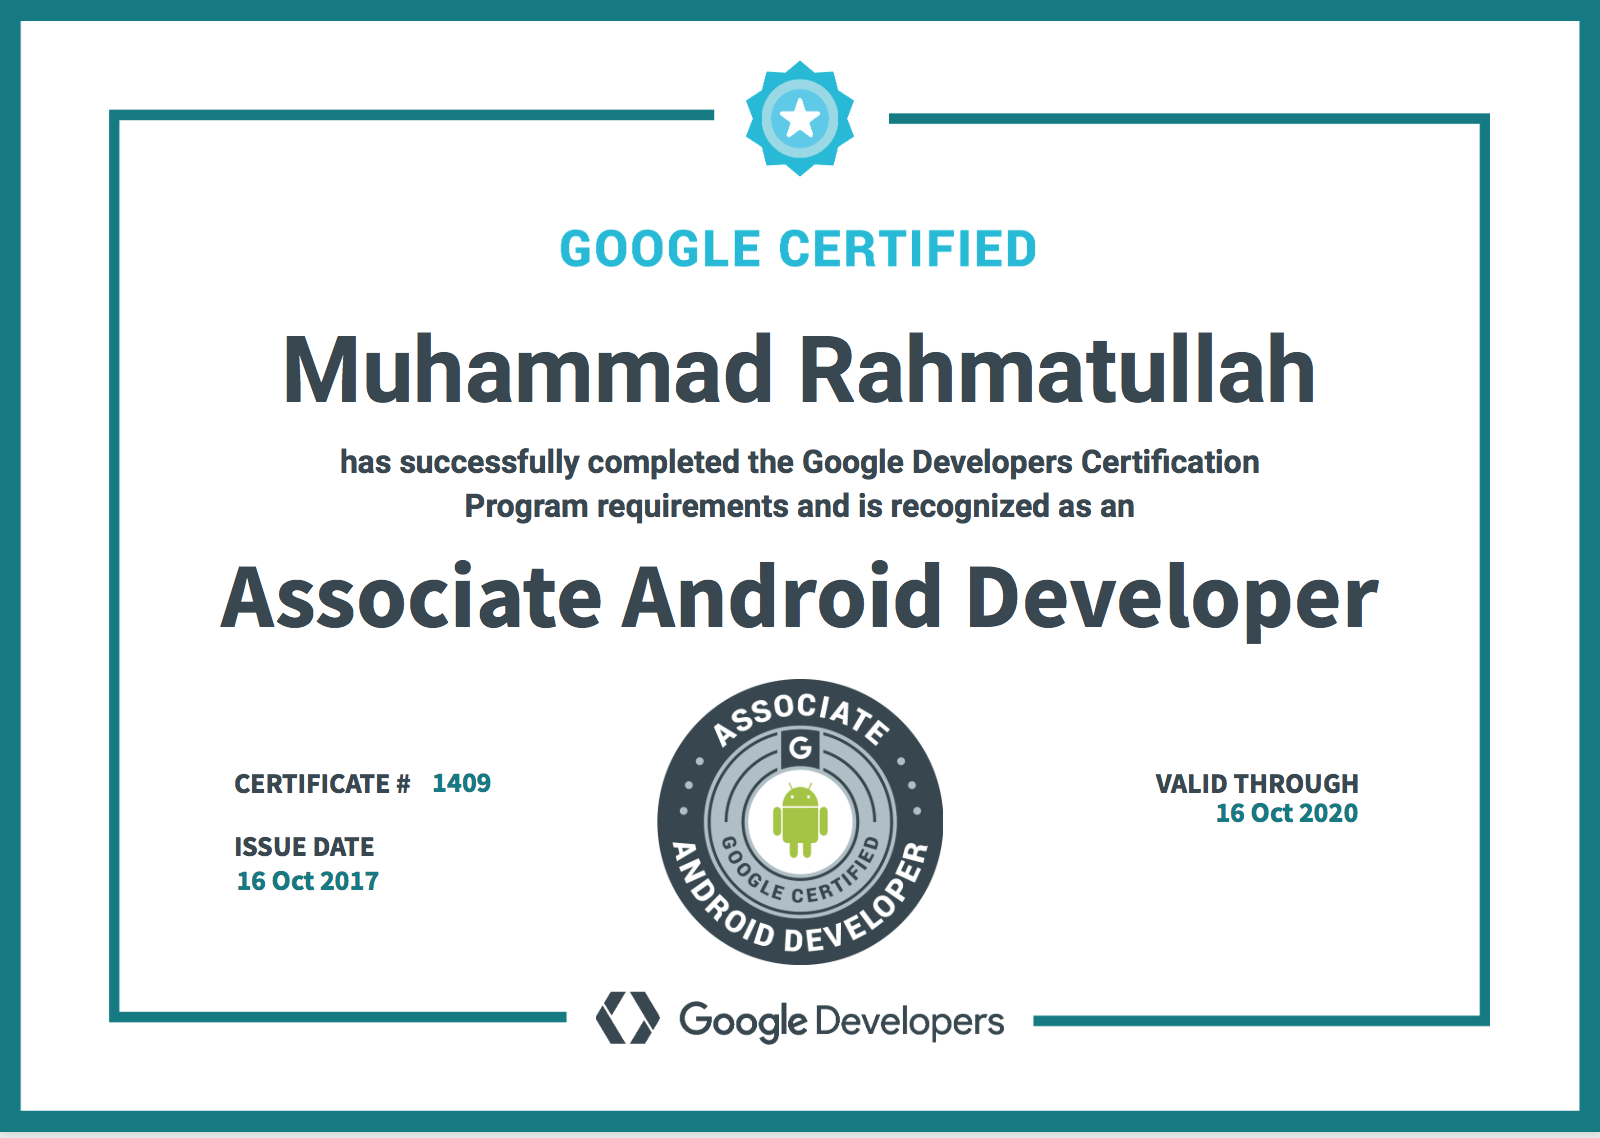 Journey To Be Google Certified Associate Android Developer